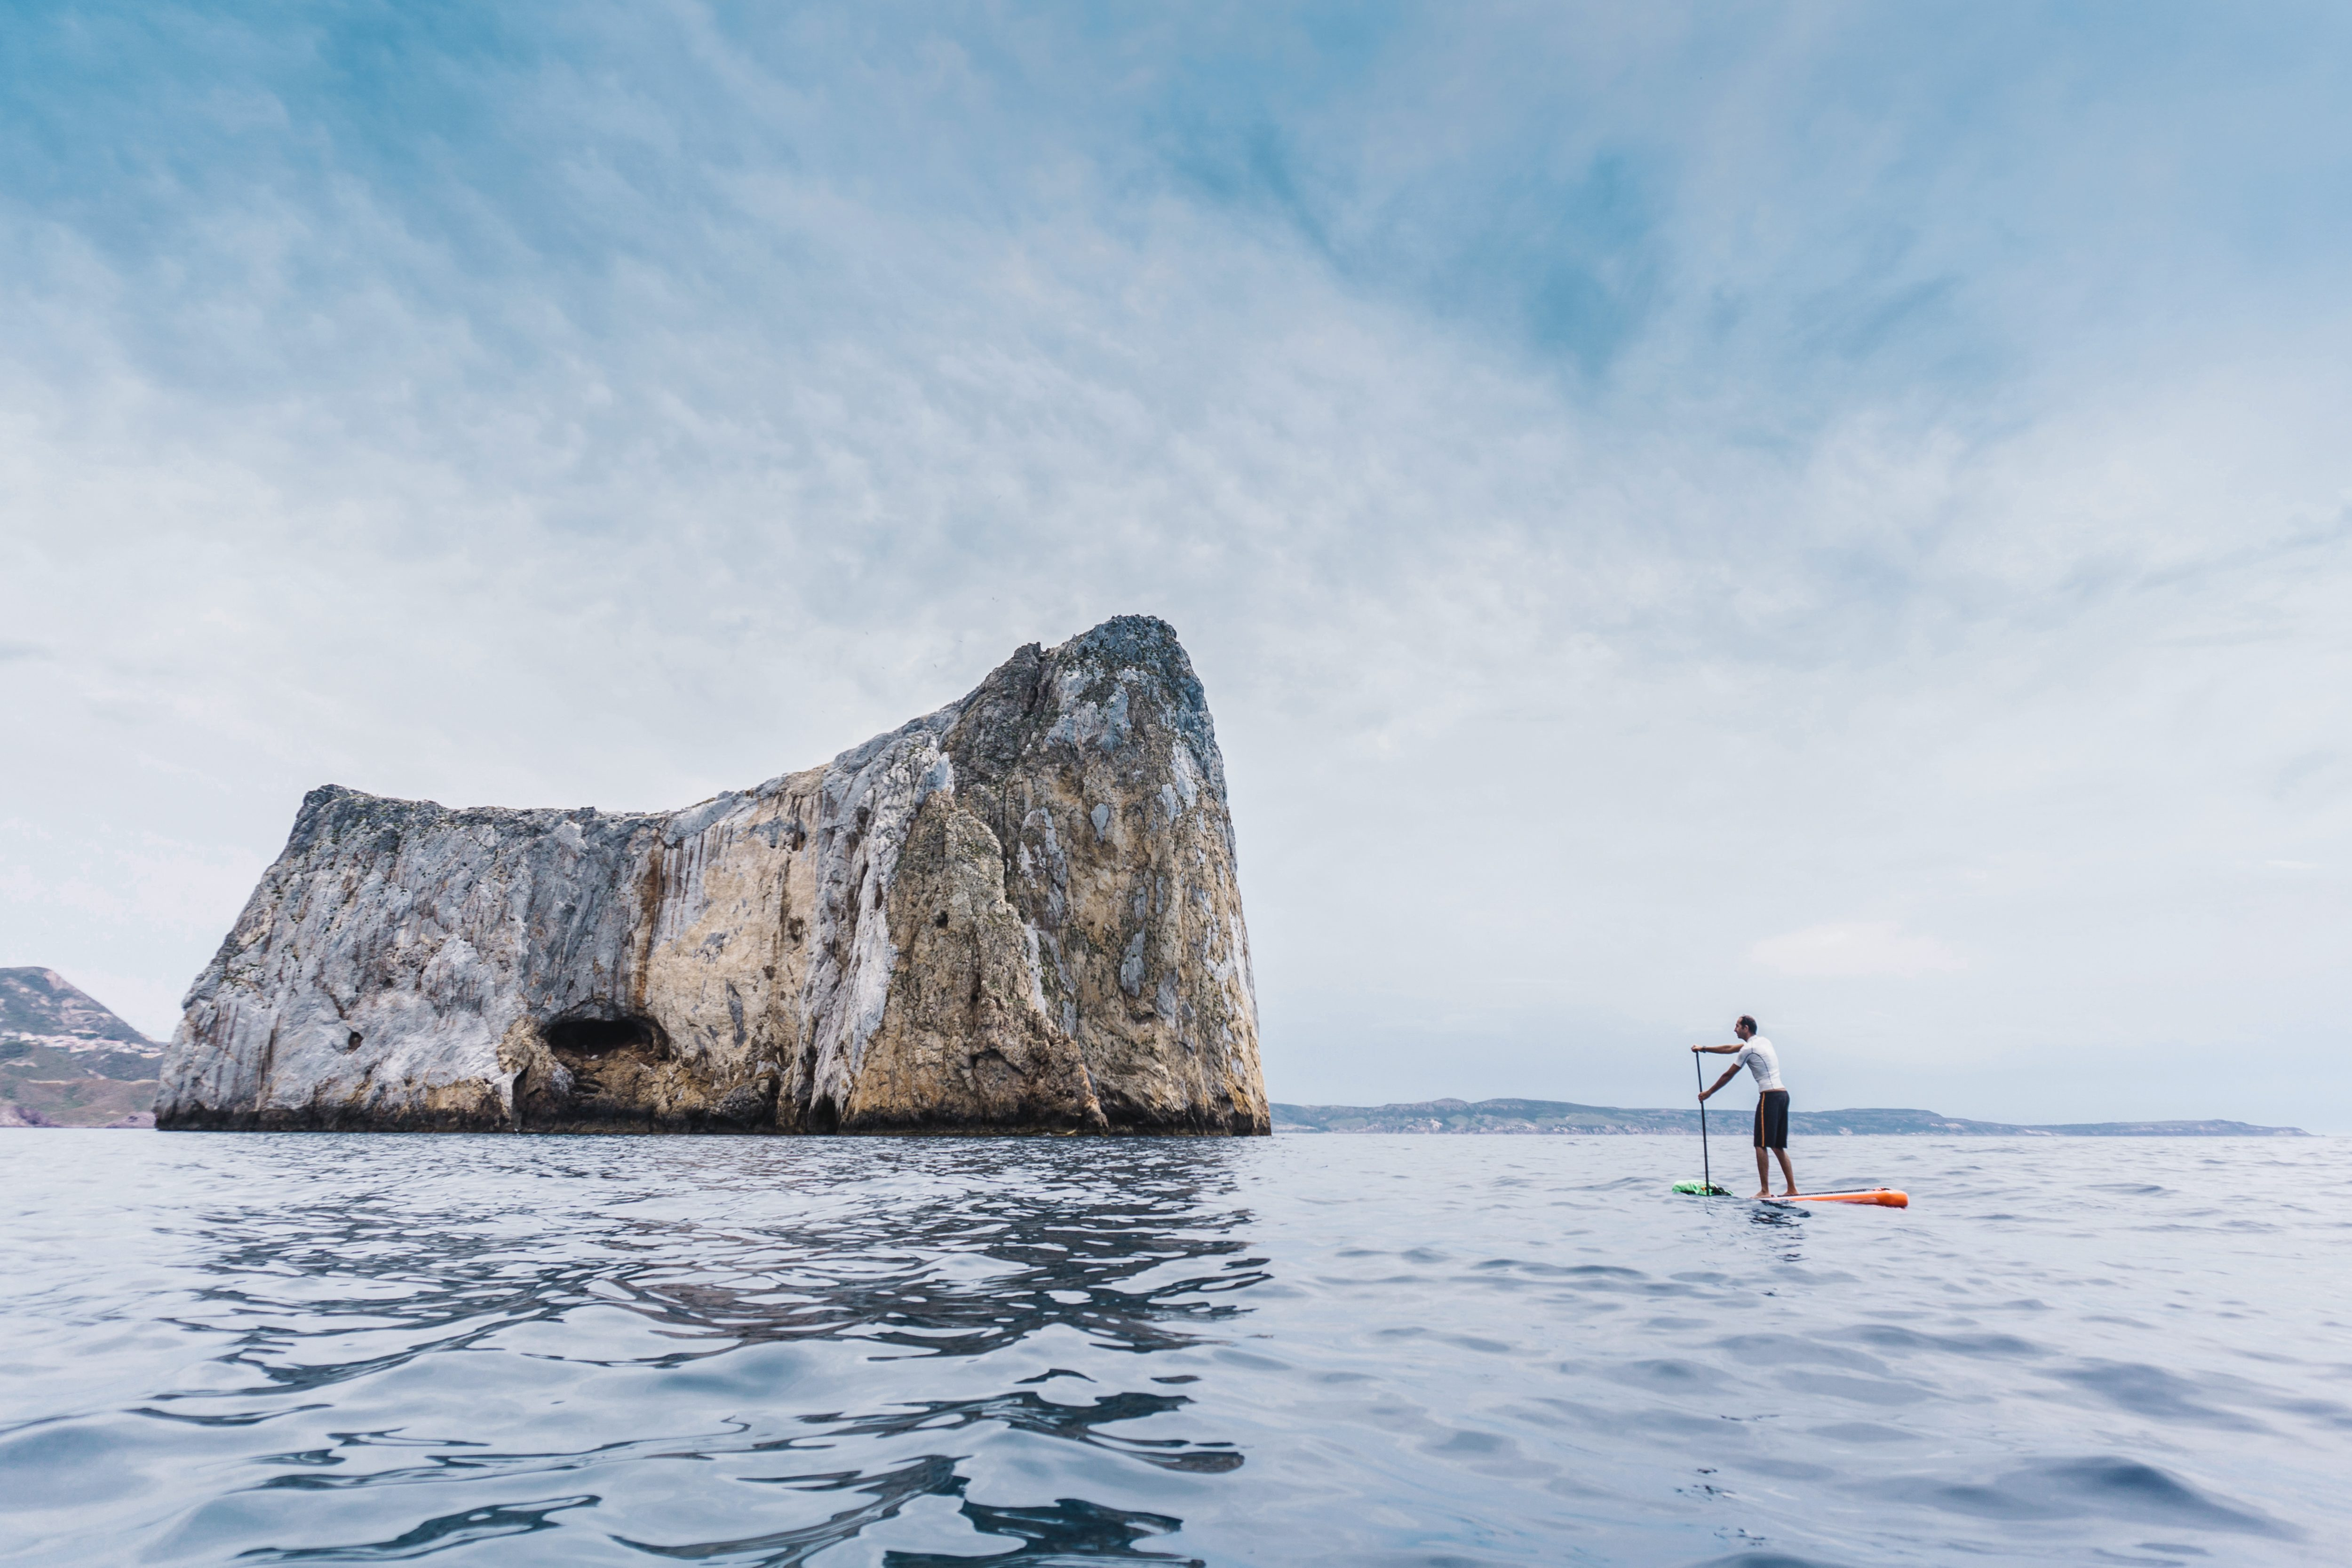 A man paddleboards on a calm sea near Sardinia